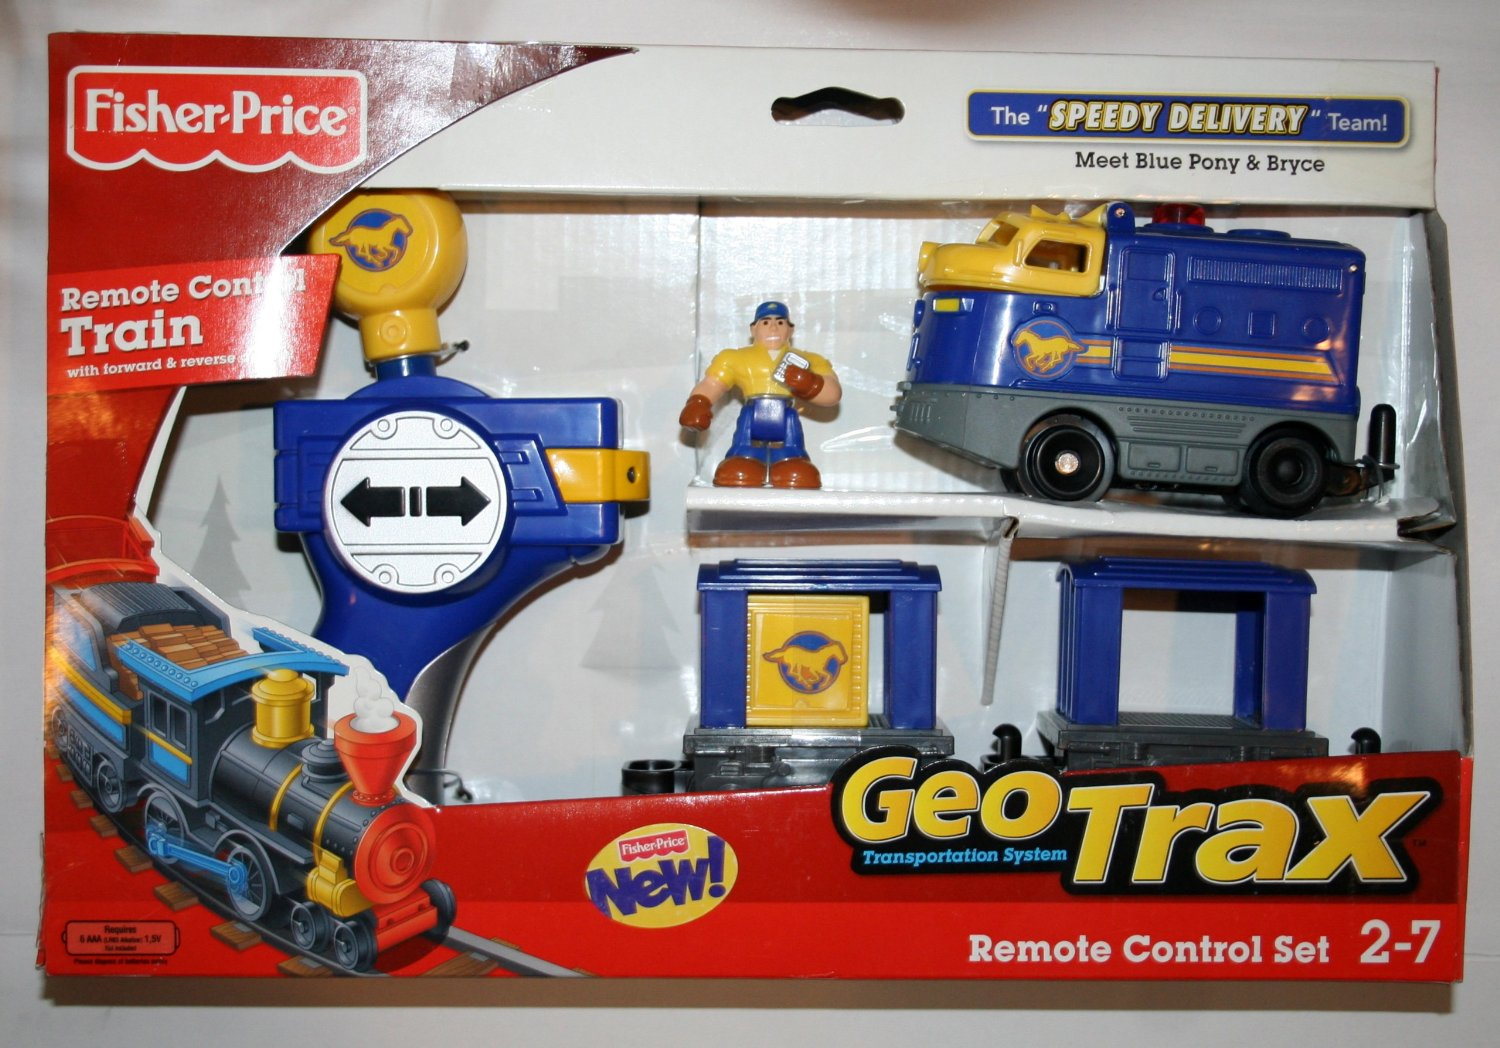 Fisher Price Geotrax Remote Control Set The Speedy Delivery Team Meet Blue Po